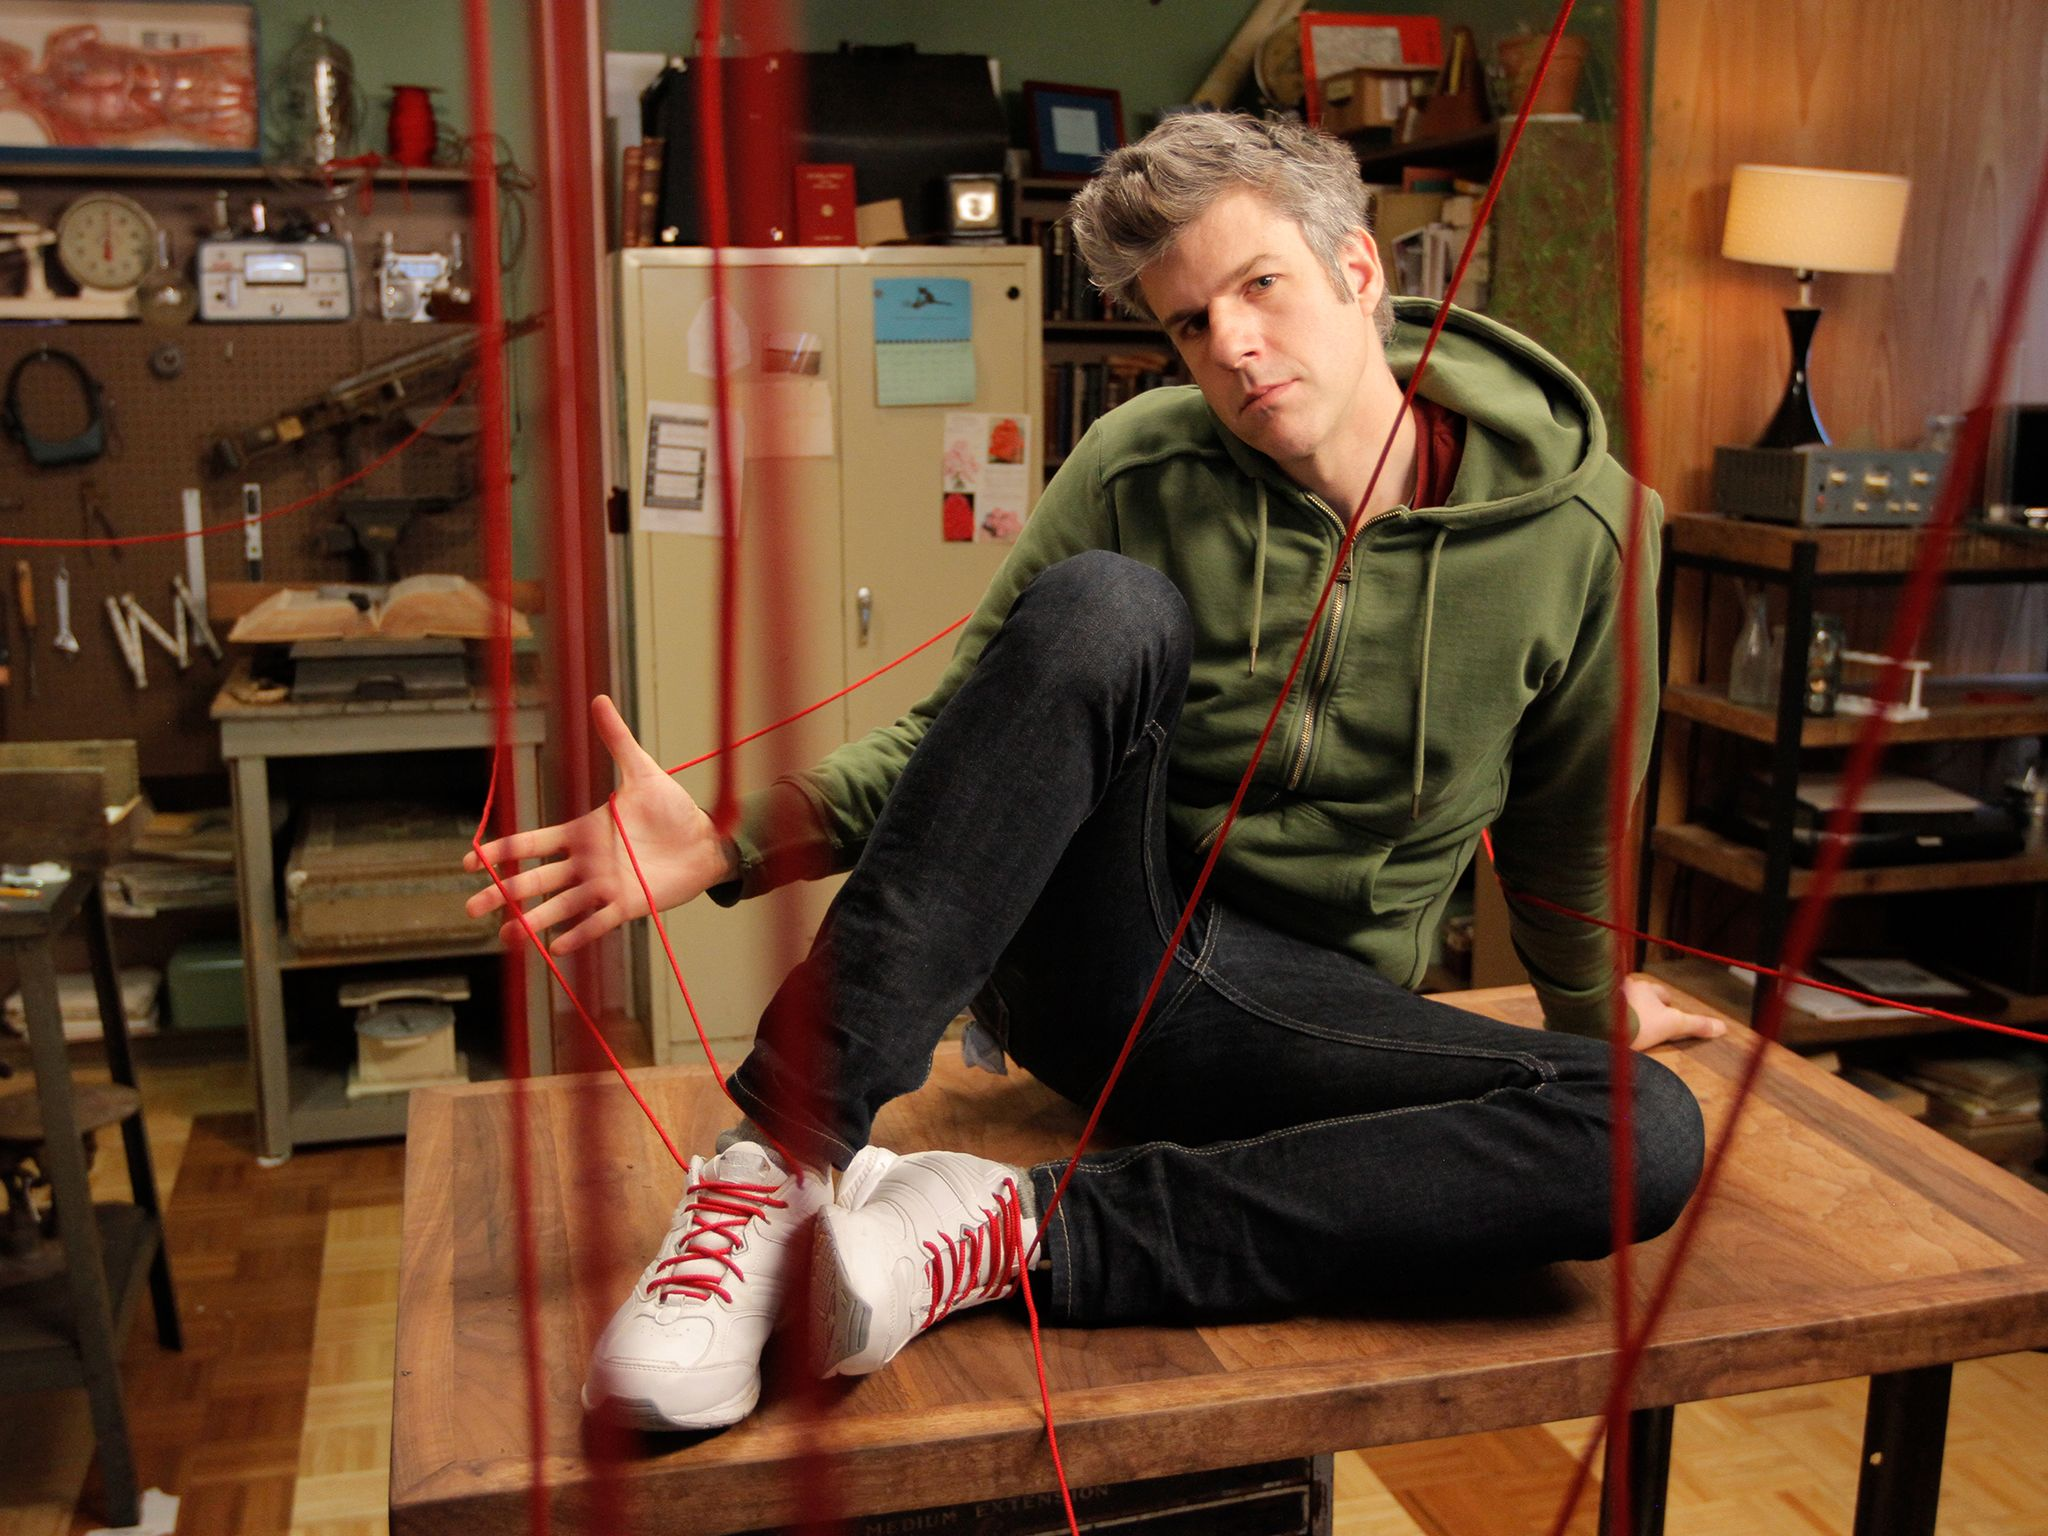 Beacon, NY: David Rees poses on top of his workbench with 50-foot laces strewn about his... [Photo of the day - October 2014]